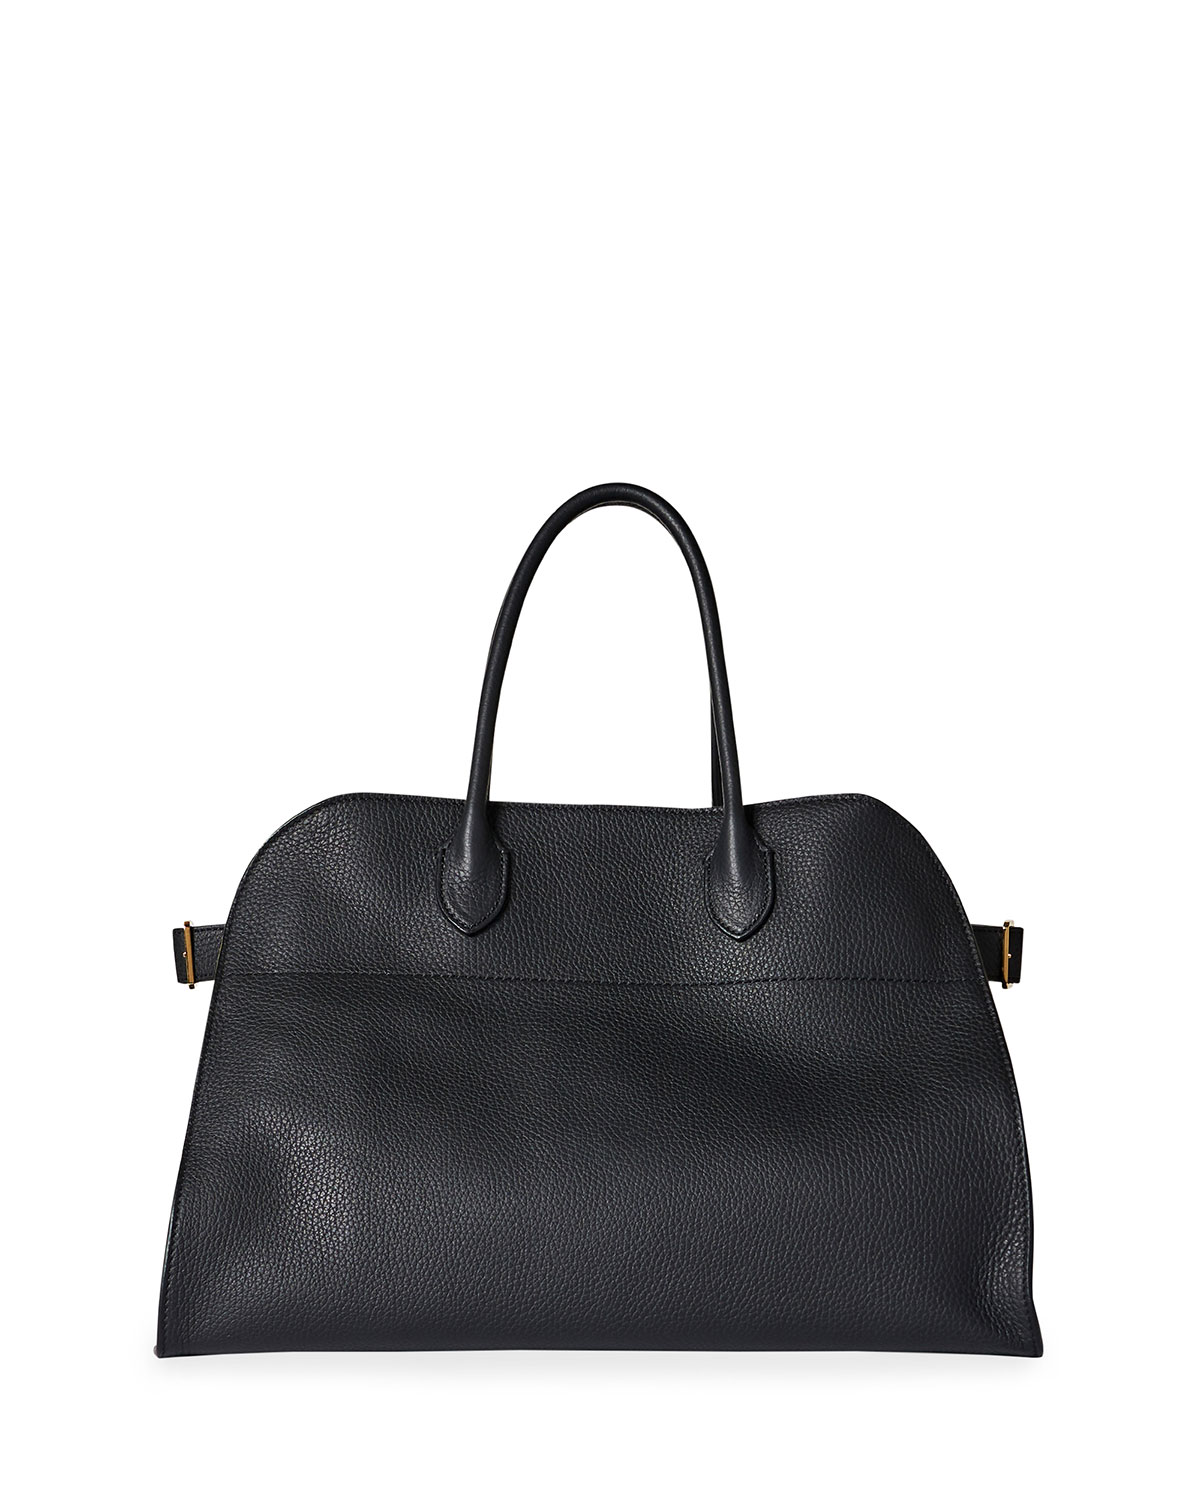 The Row MARGAUX 15 TOP HANDLE BAG